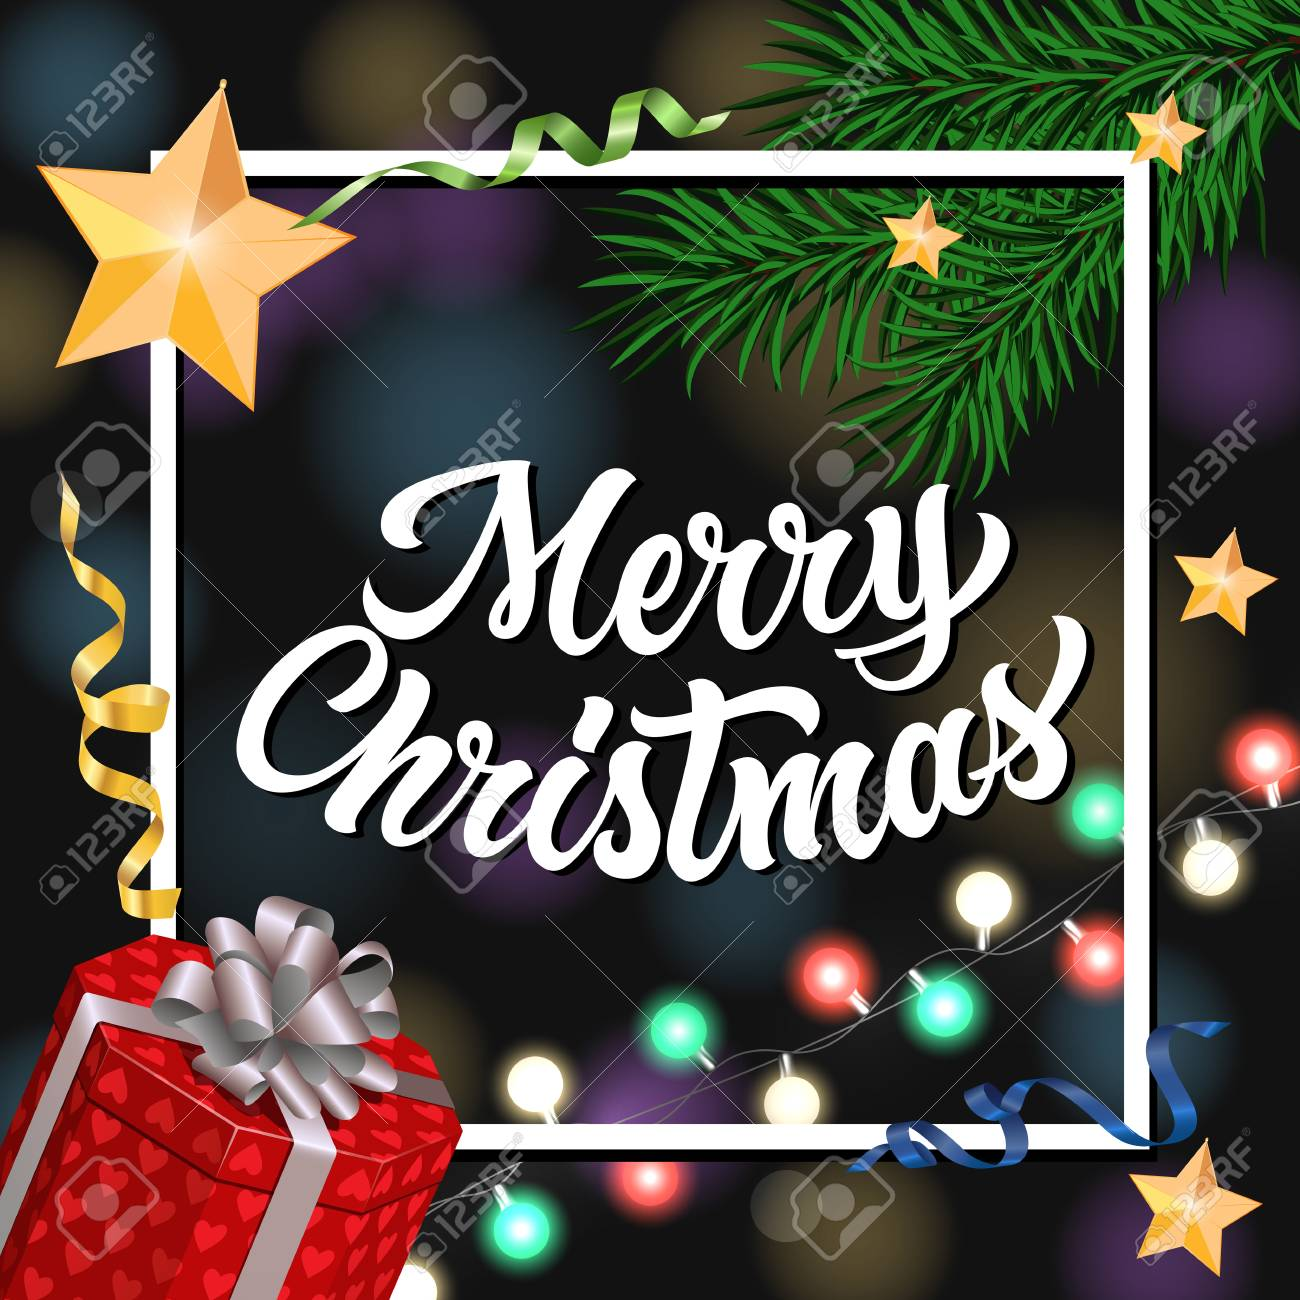 merry christmas lettering in frame christmas greeting card with fir tree twigs decorations and